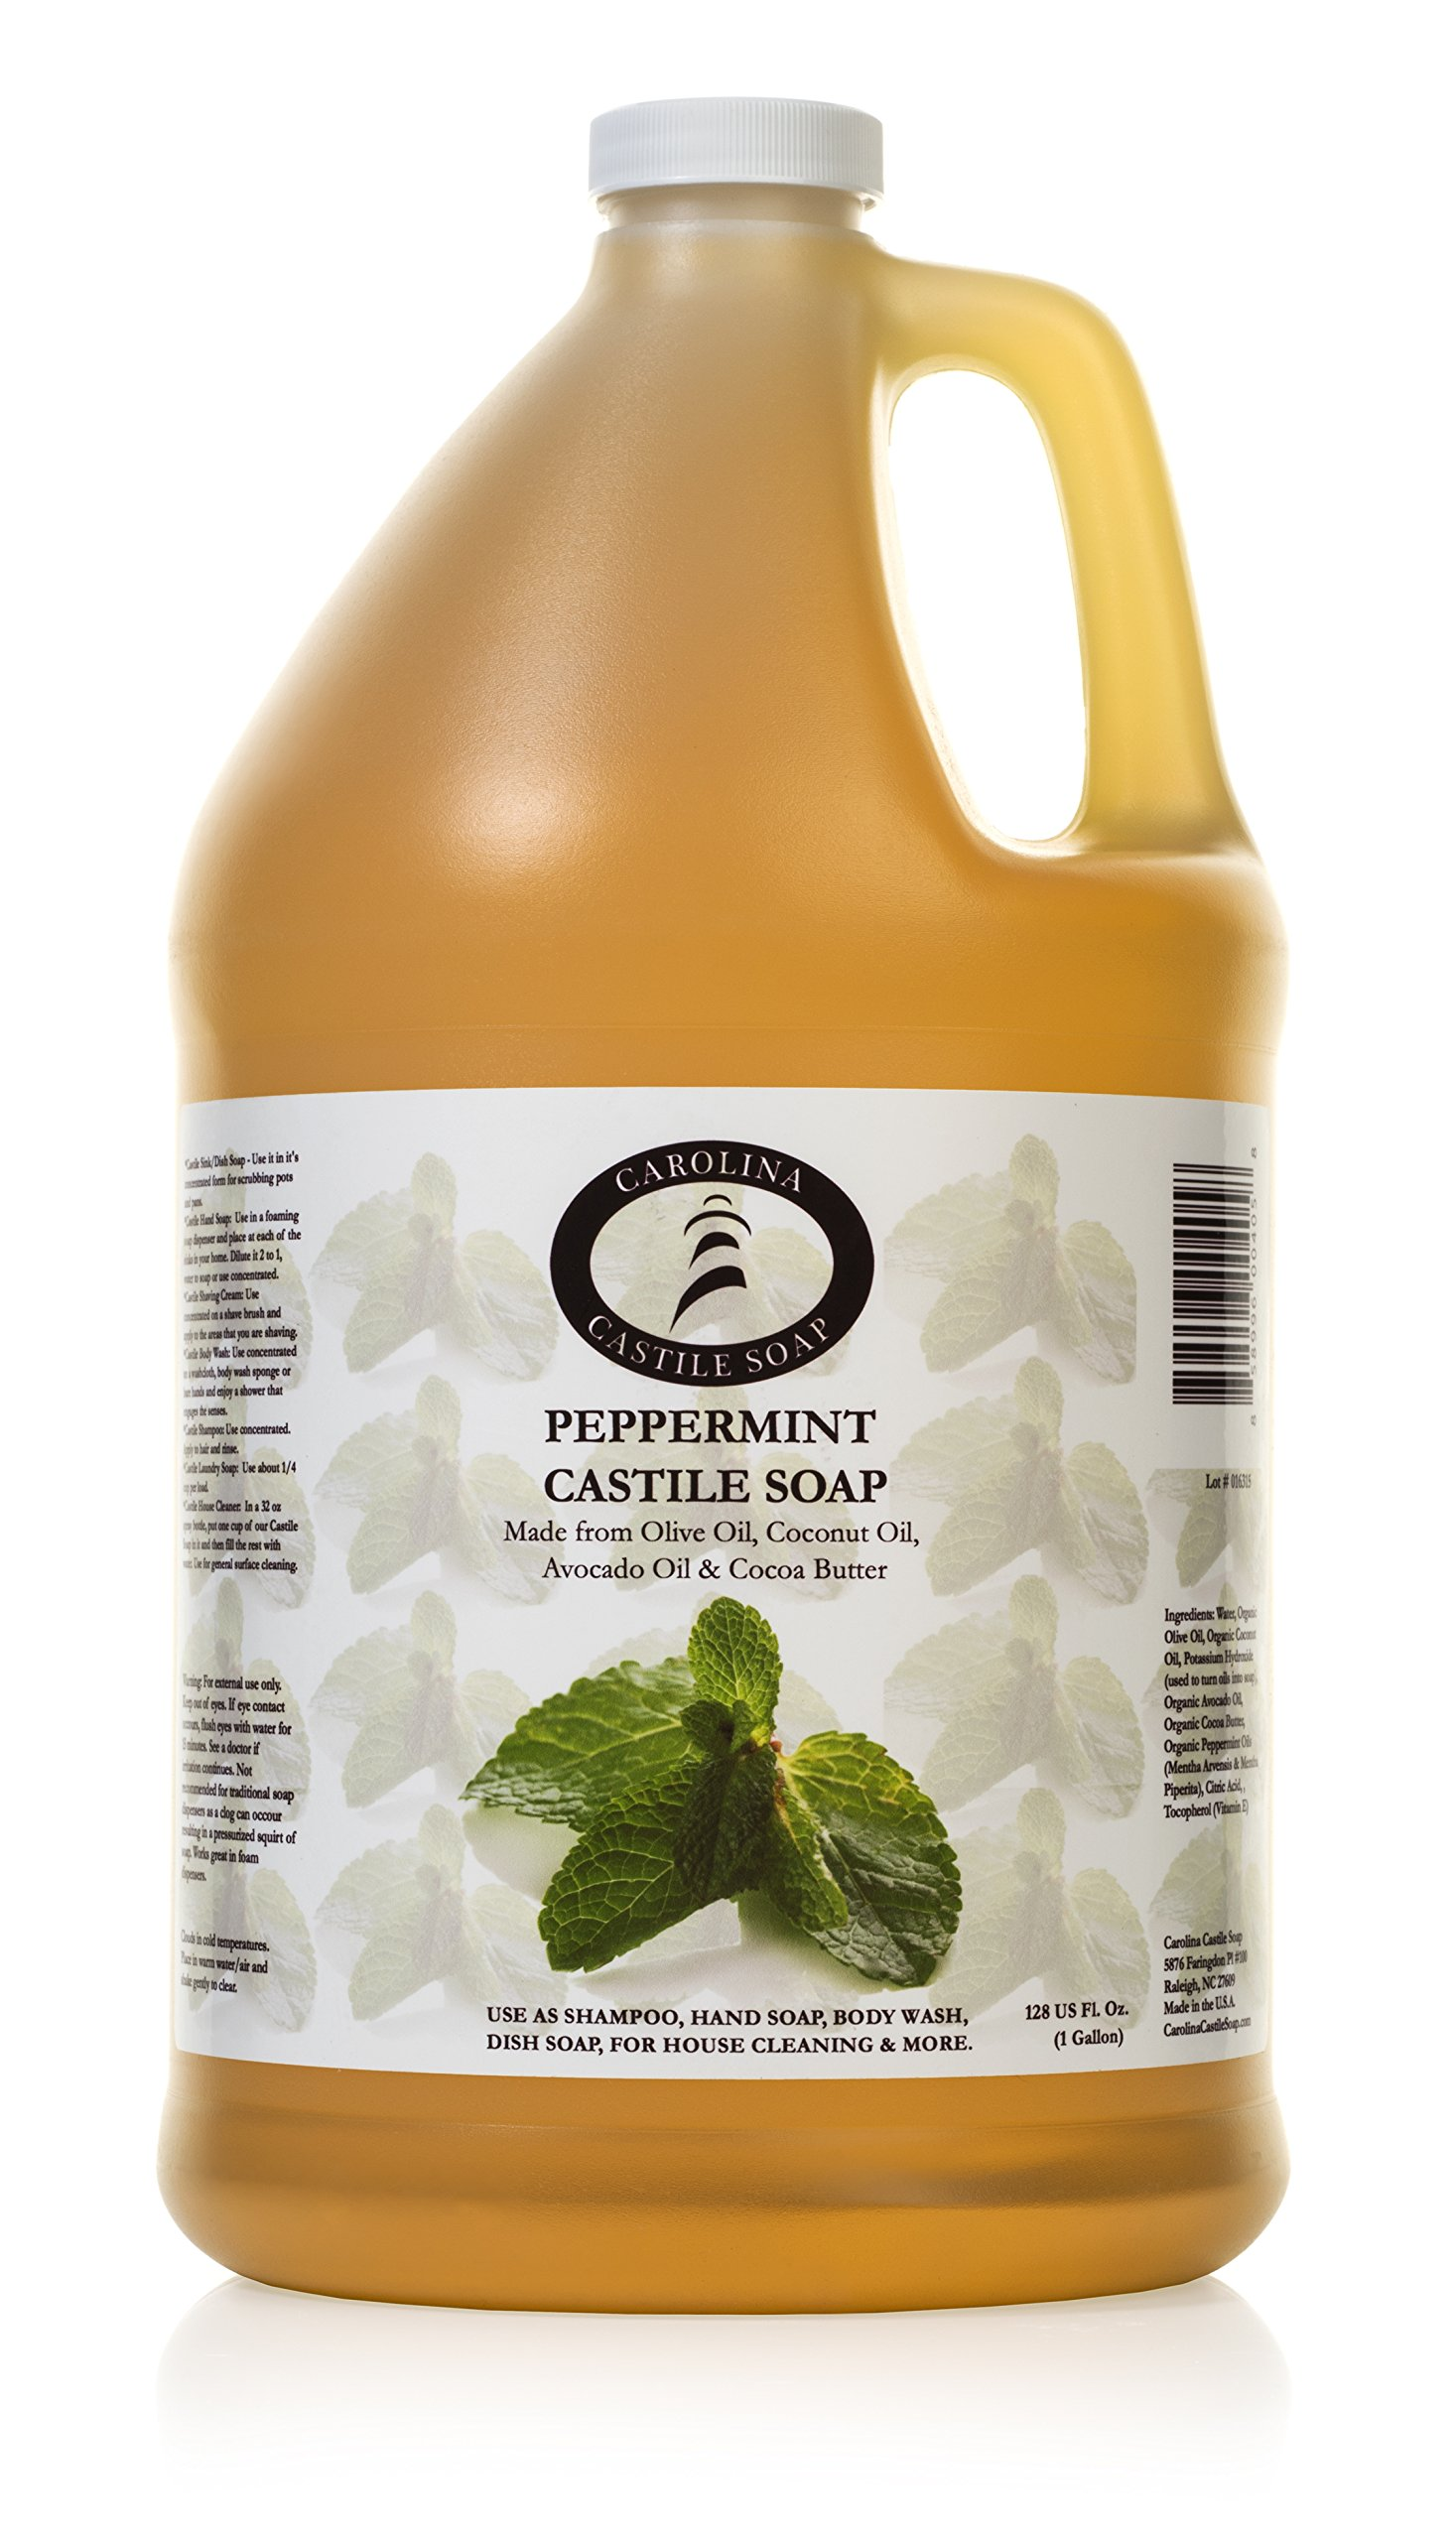 Carolina Castile Soap Peppermint | Certified Organic - 1 Gallon